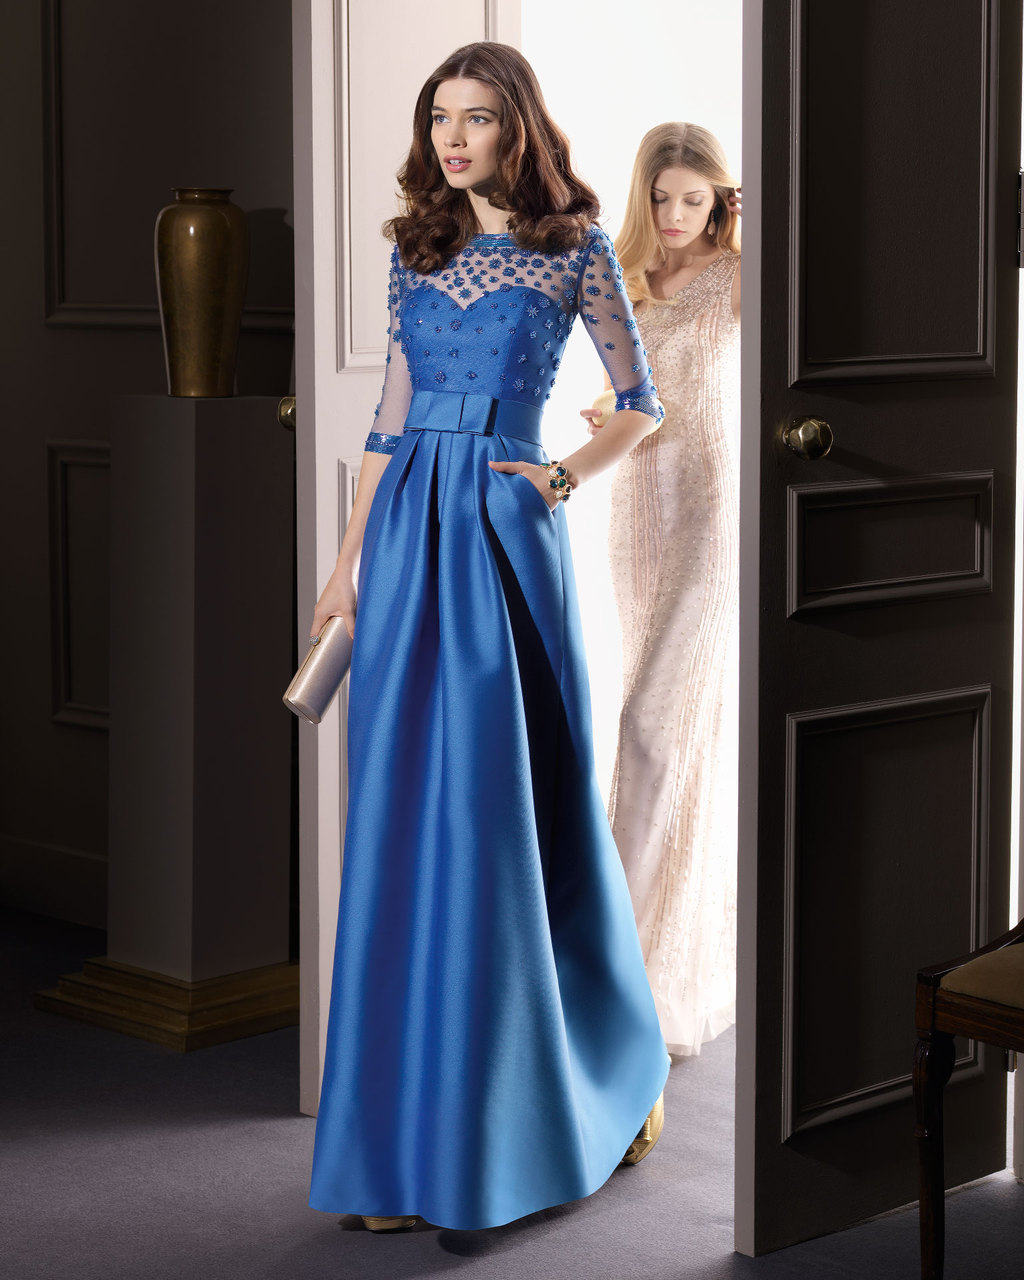 Gorgeous-2014-bridesmaid-dresses-from-aire-barcelona-blue-with-illusion-sleeves-and-pockets.full